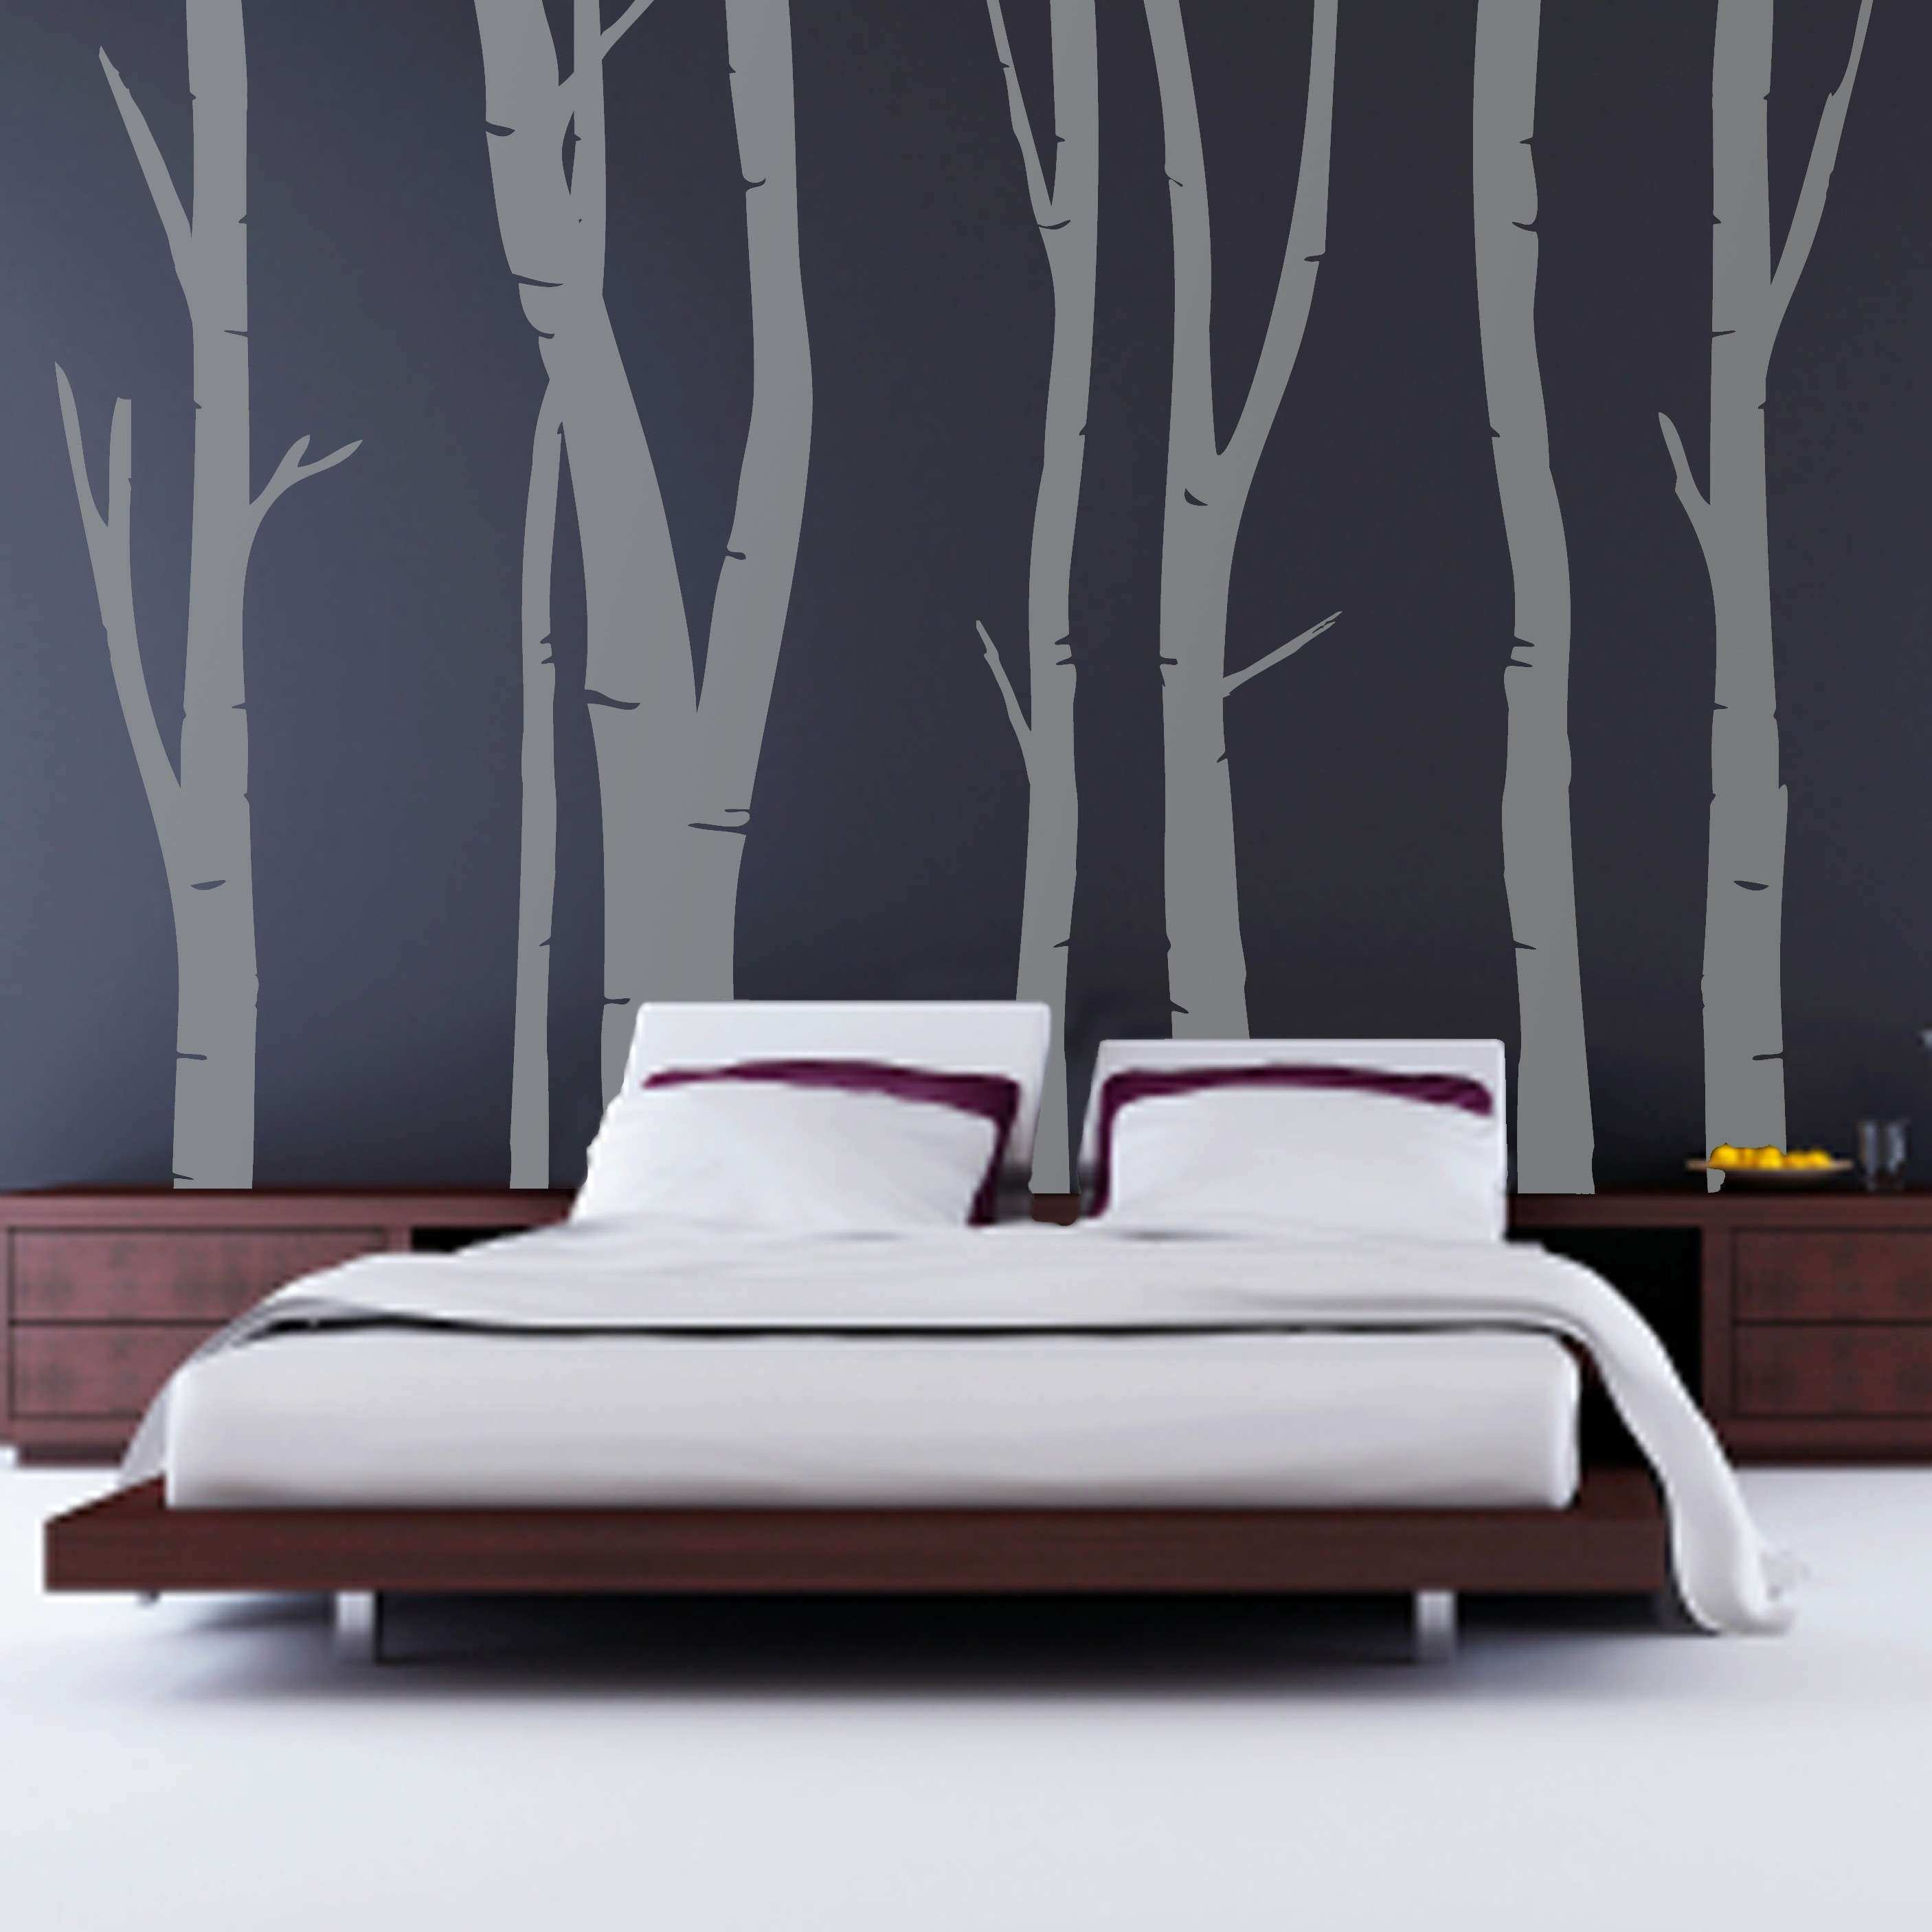 Living Room Design Ideas Inspirational Wall Decals for Bedroom